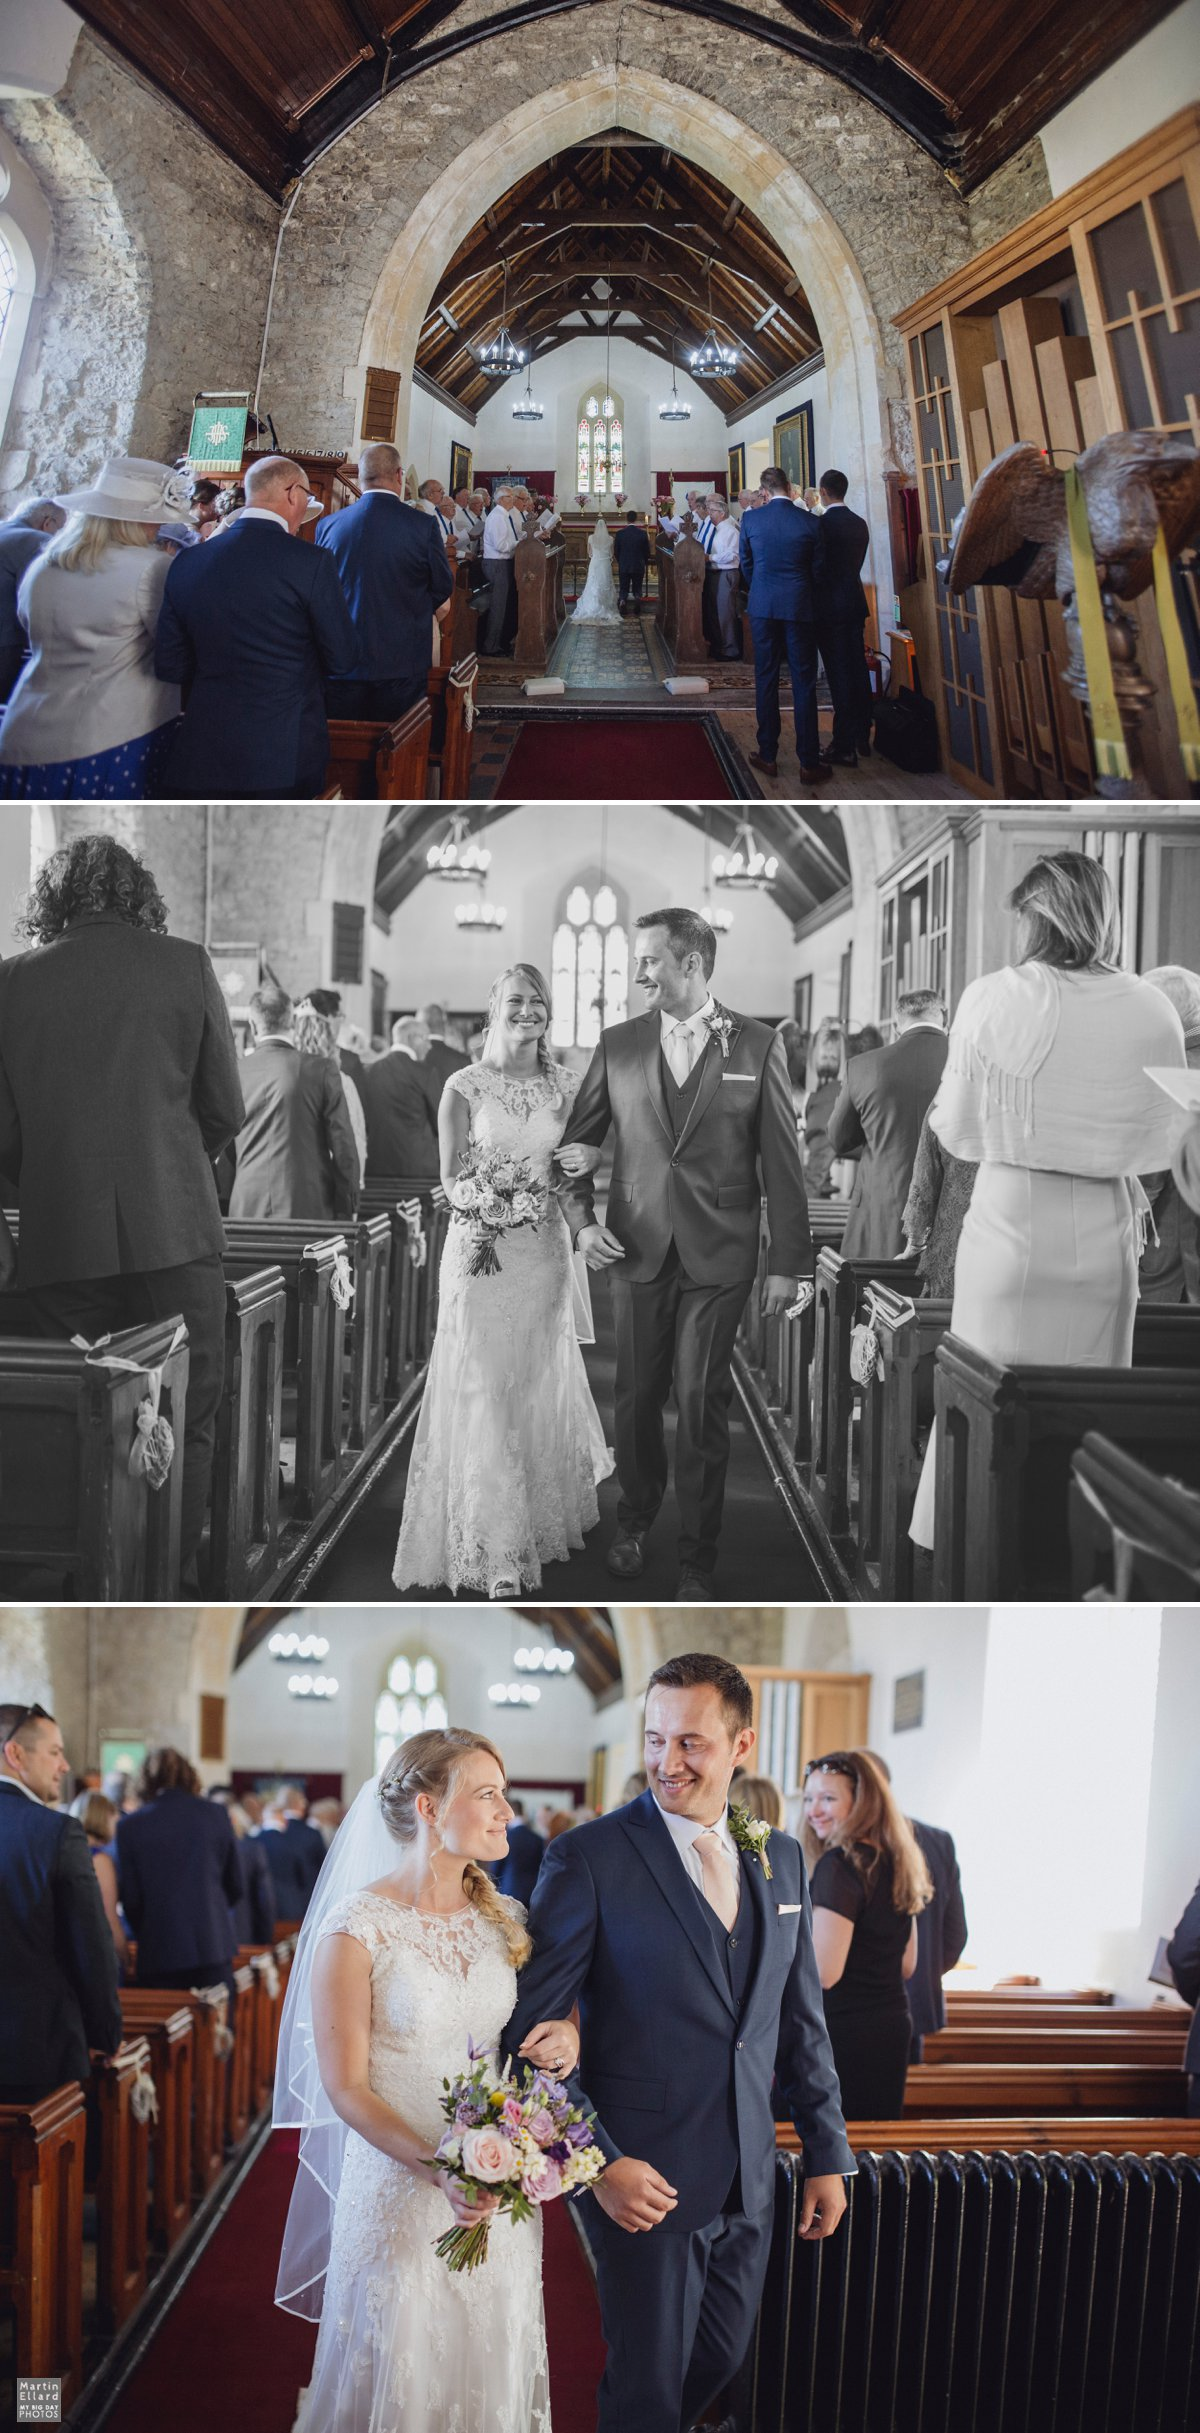 Debbie and Mat's King Arthur wedding